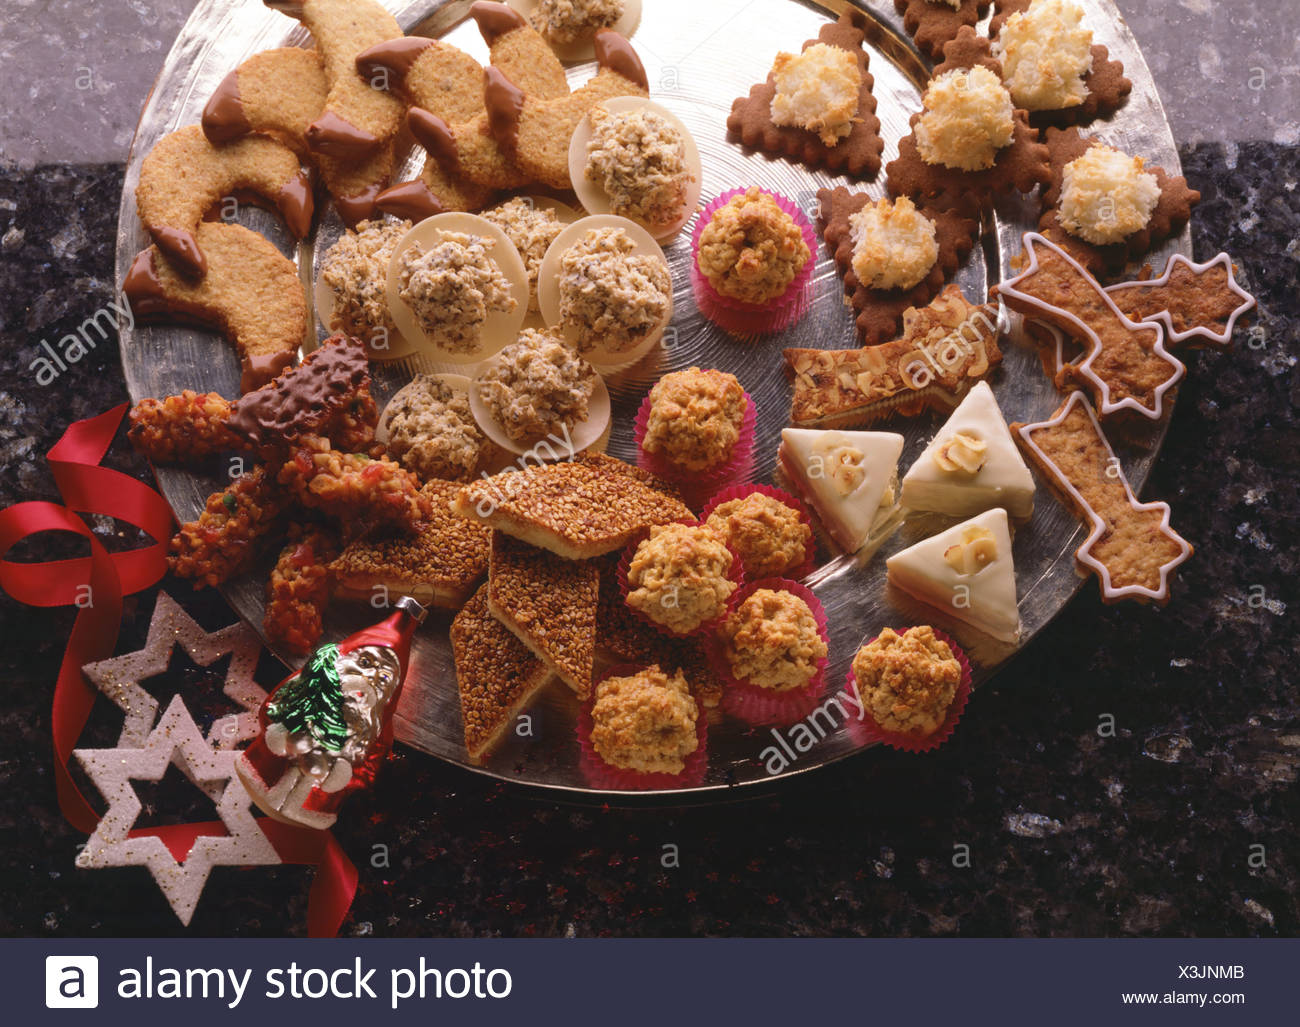 German Christmas Cookies.Tableau Christmas Cookies Several Kinds Of German